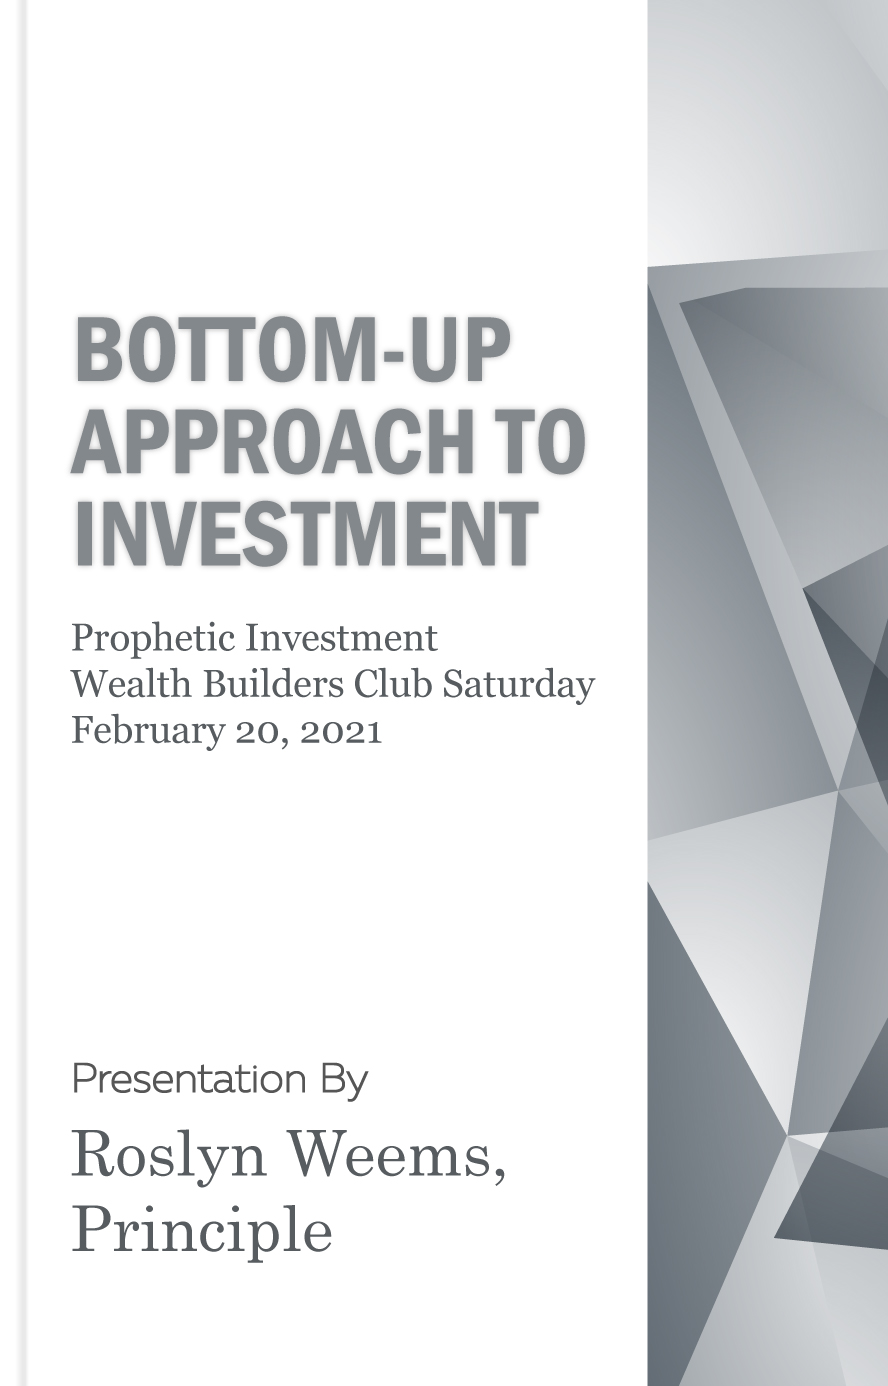 BOTTOM-UP APPROACH TO INVESTING